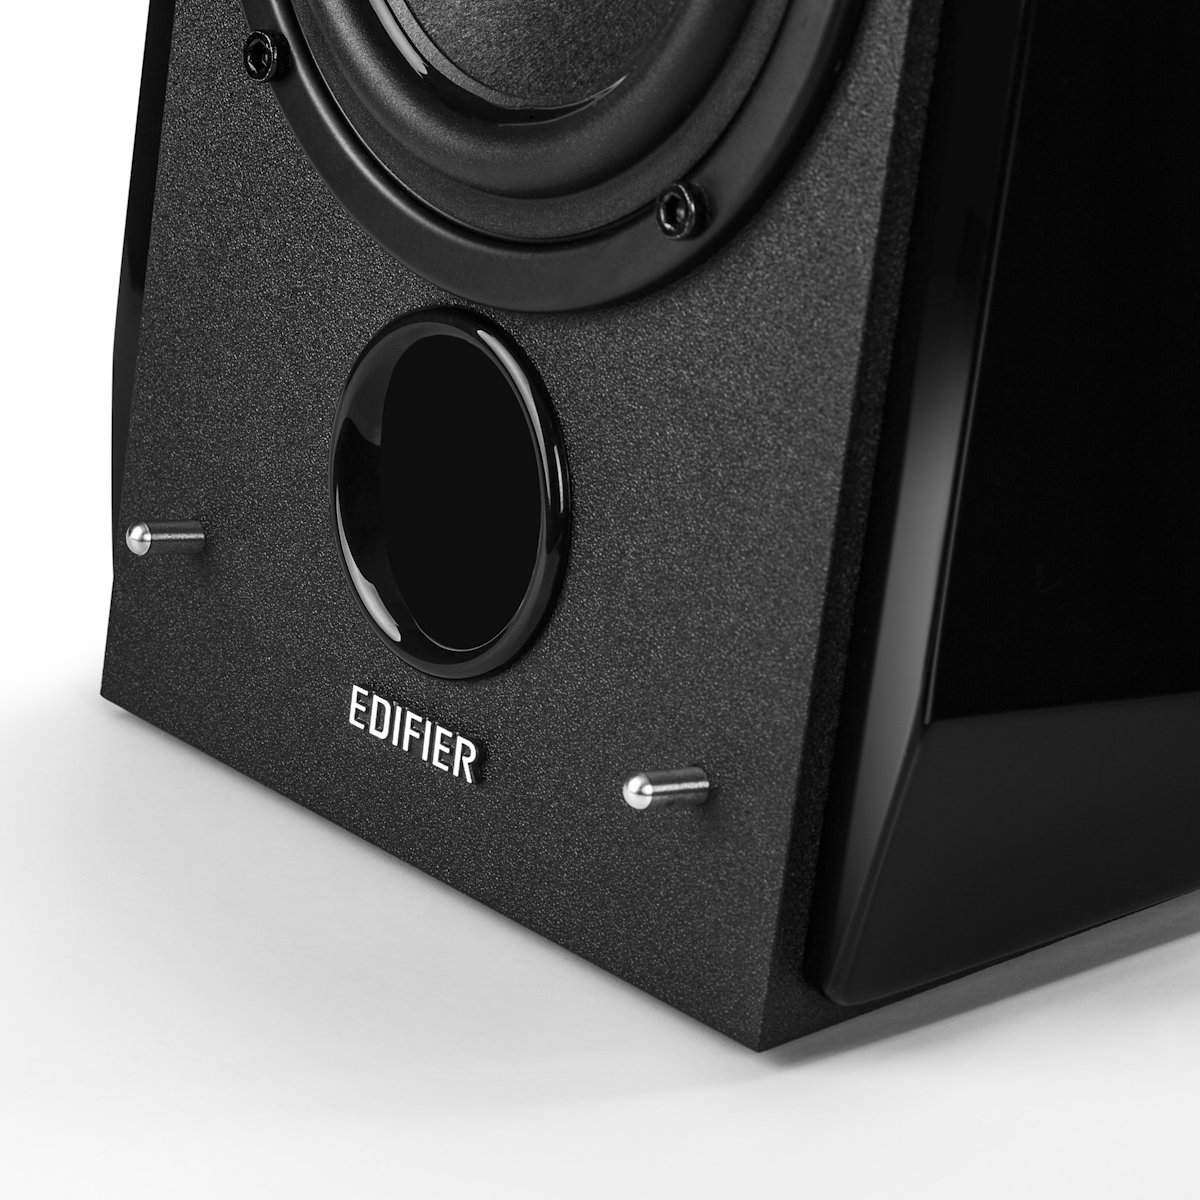 Lautsprecher Boxen Bluetooth Edifier R1800bt Studio Bluetooth Regal Lautsprecher Boxen